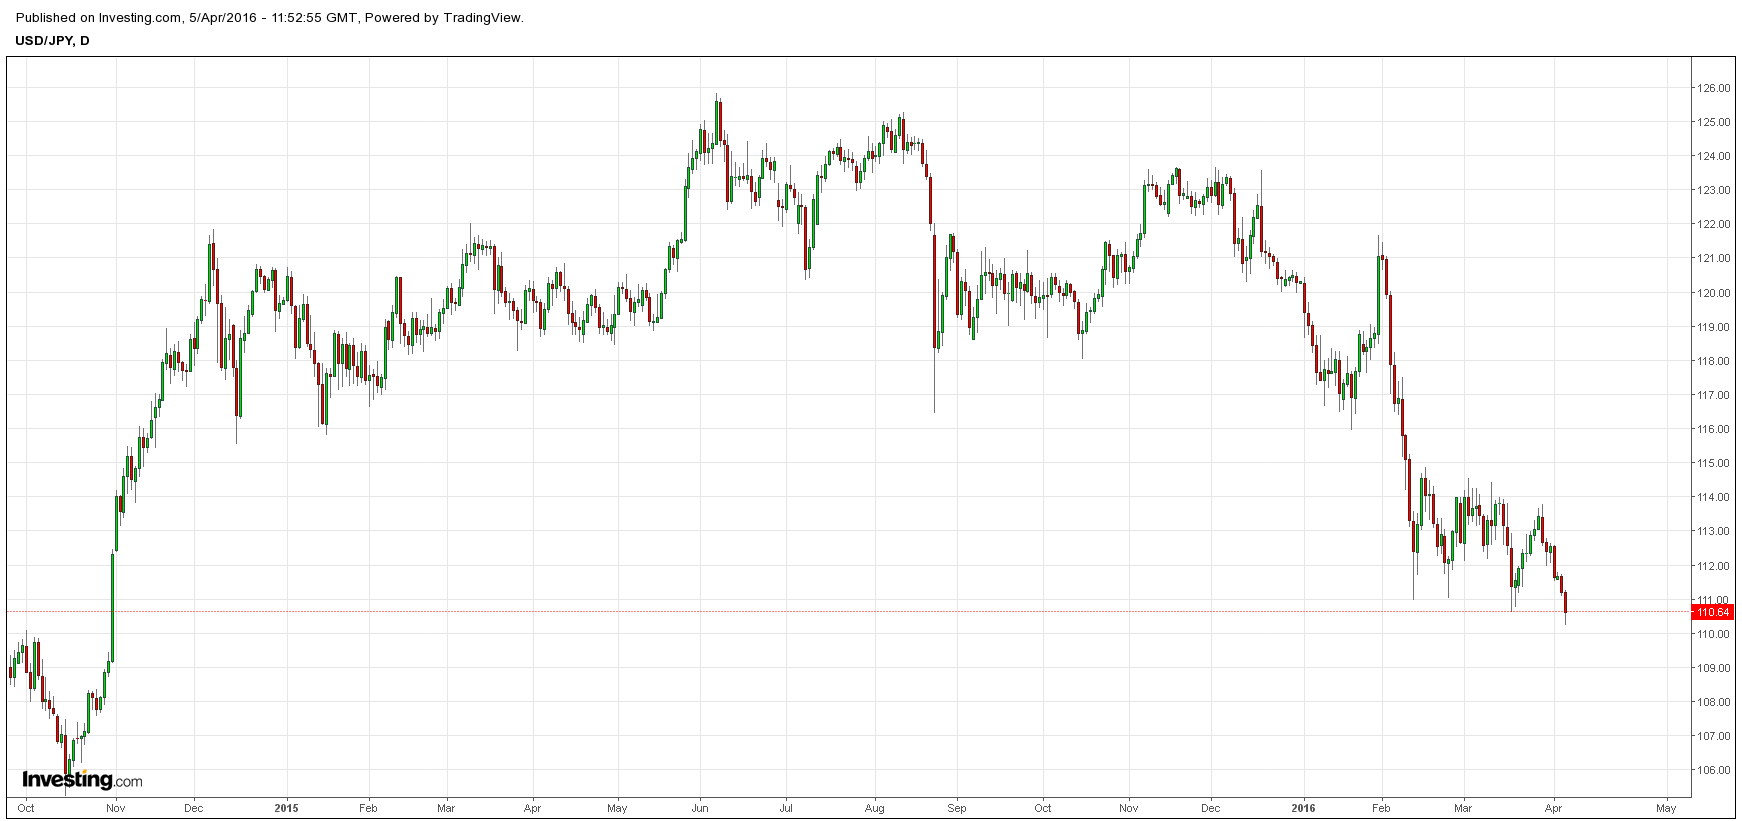 USDJPY down to important levels. Prices breached former lows just below 111 and have tried to bounce in the last couple hours, but at current levels, prices would make new intra-day and closing lows here